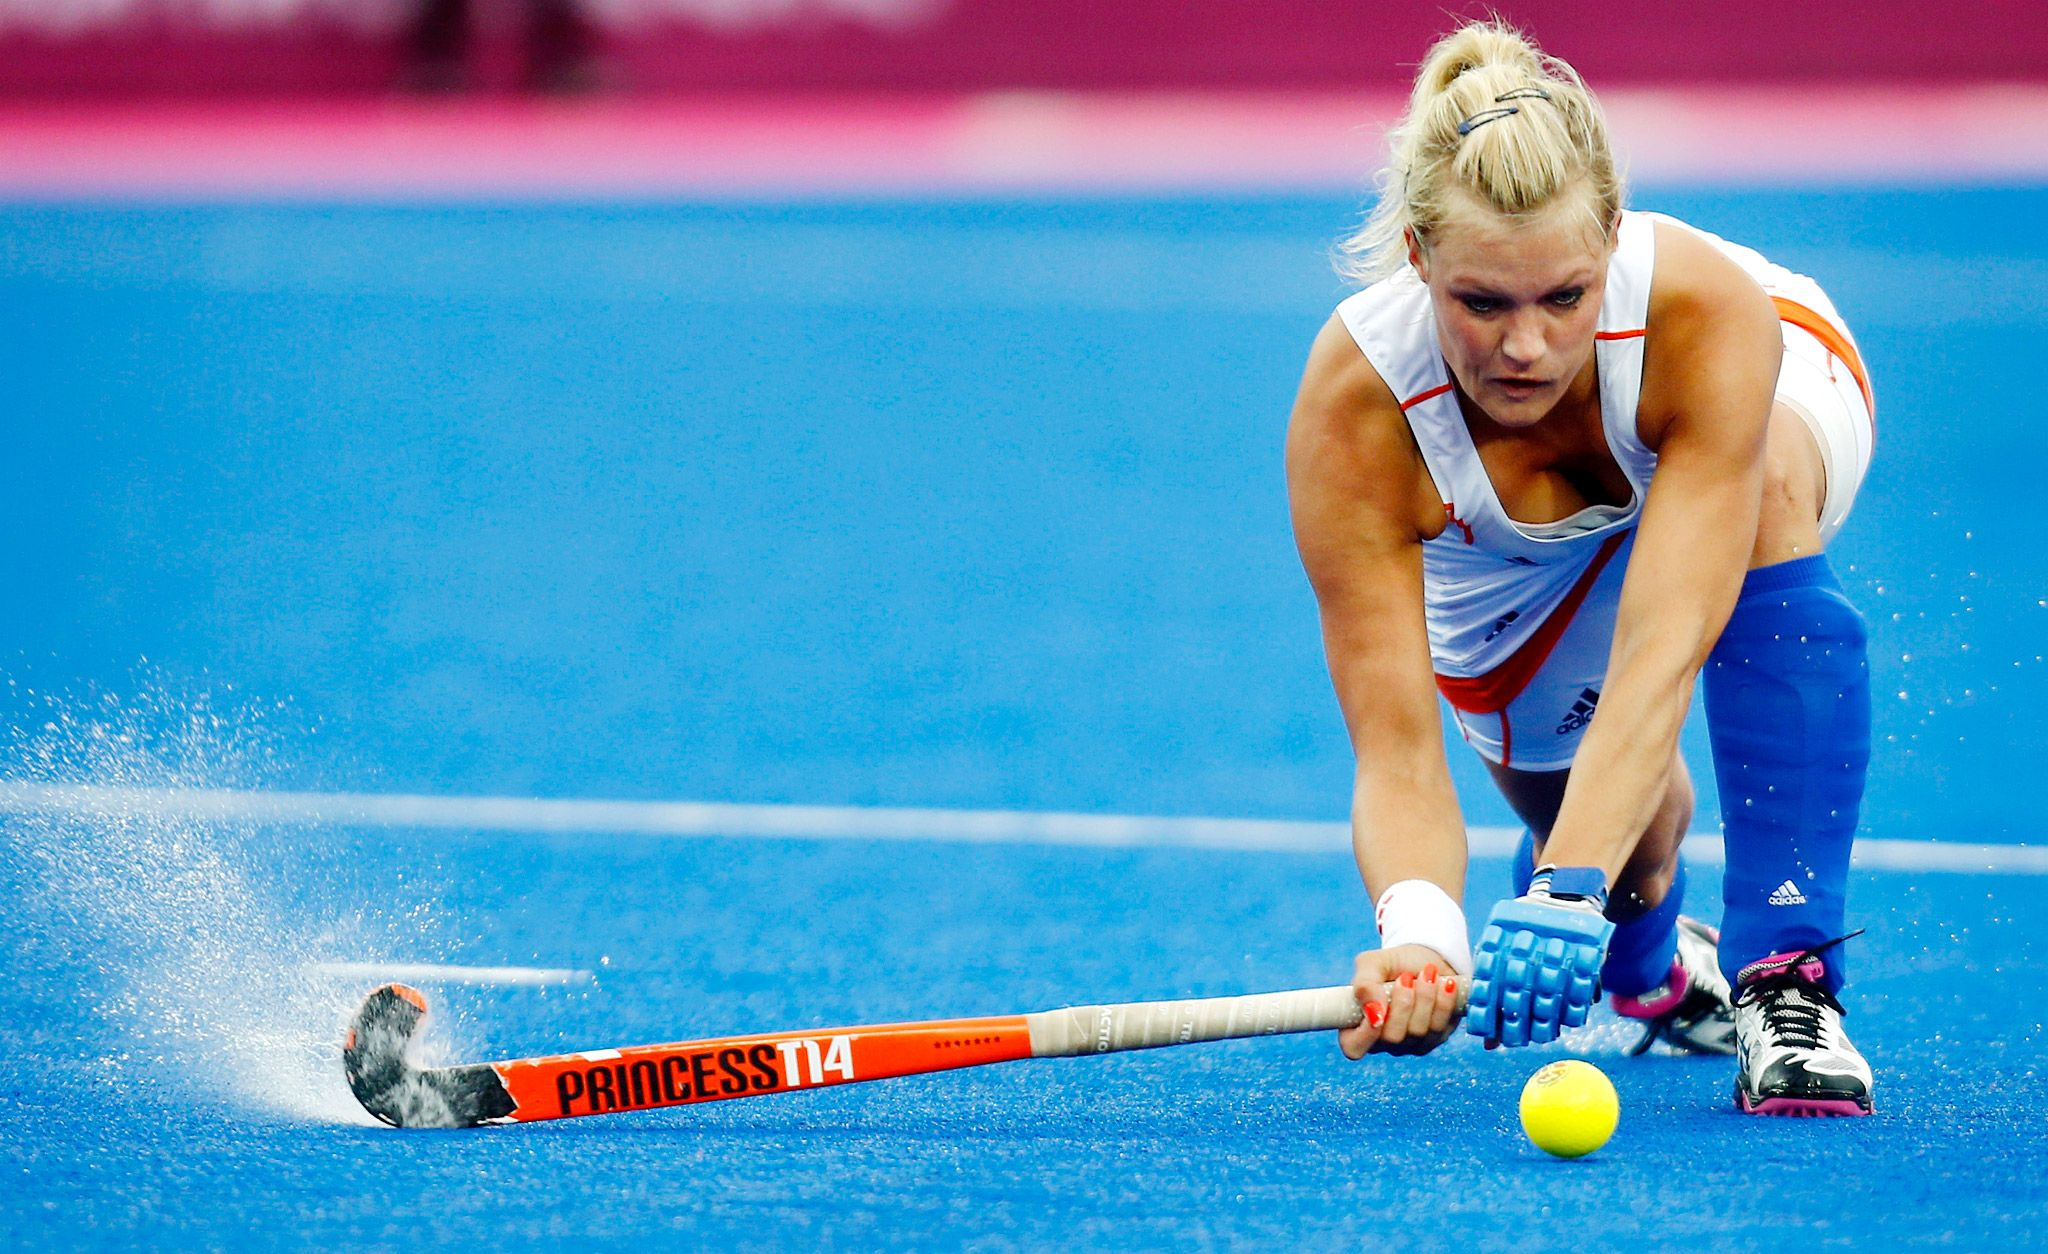 Photos of the Week August 5 Field hockey, Olympic games